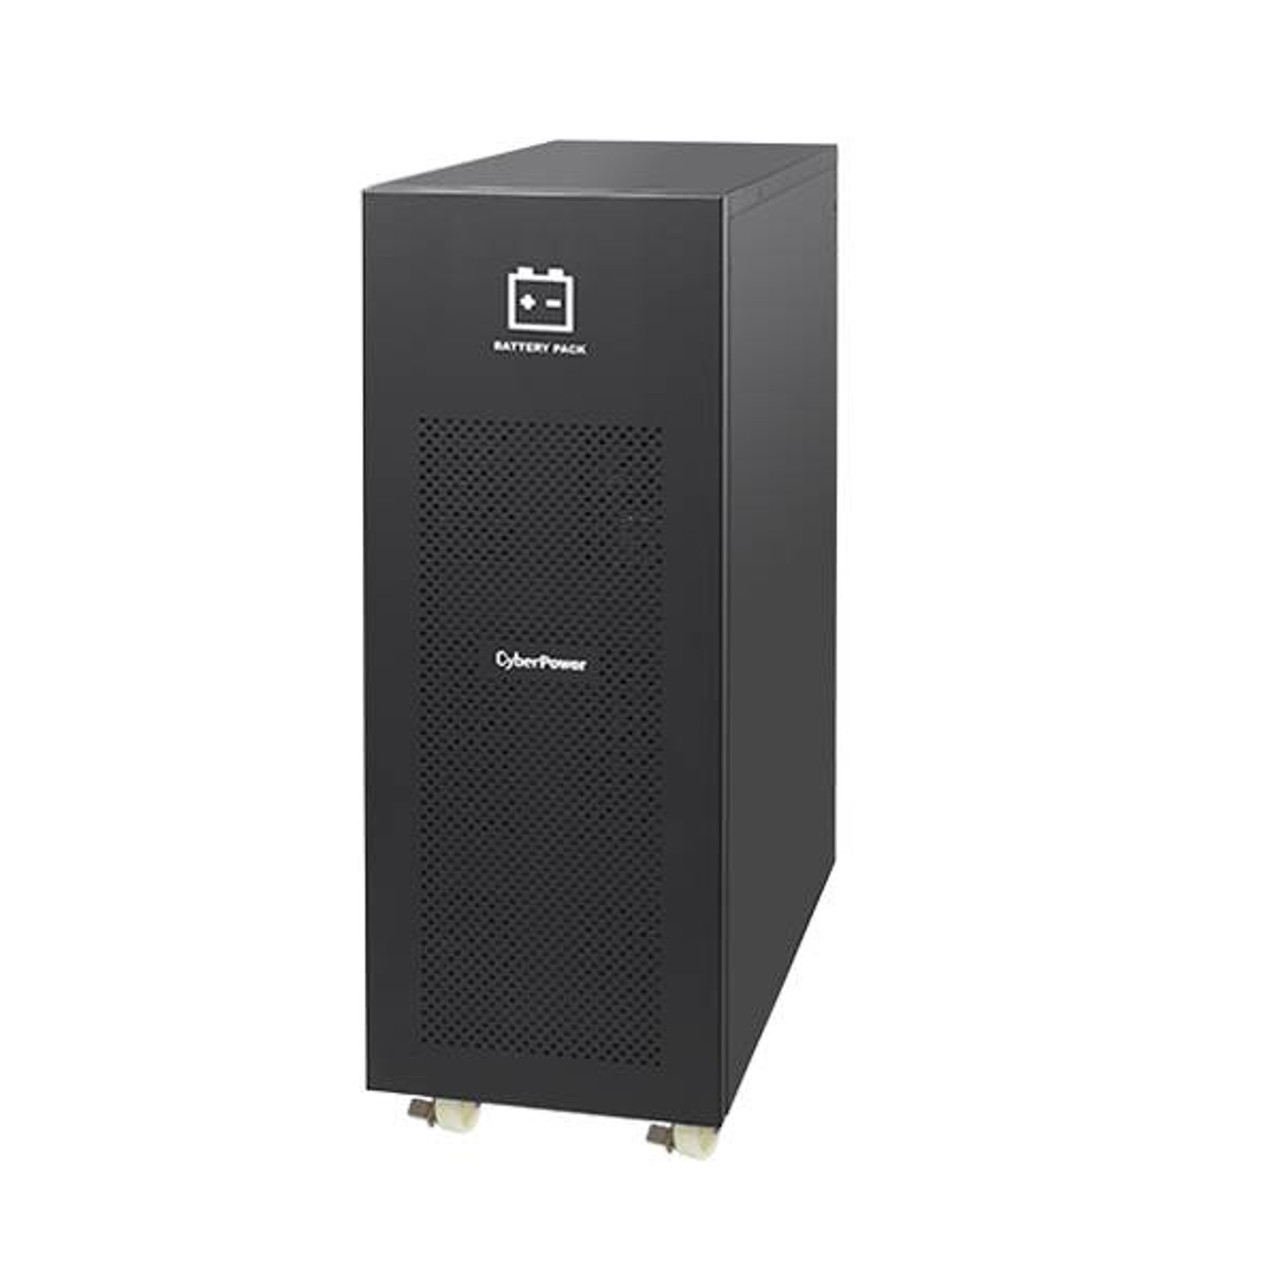 Image for CyberPower BPSE240V47A Extended Runtime Battery Pack for OLS6000E CX Computer Superstore